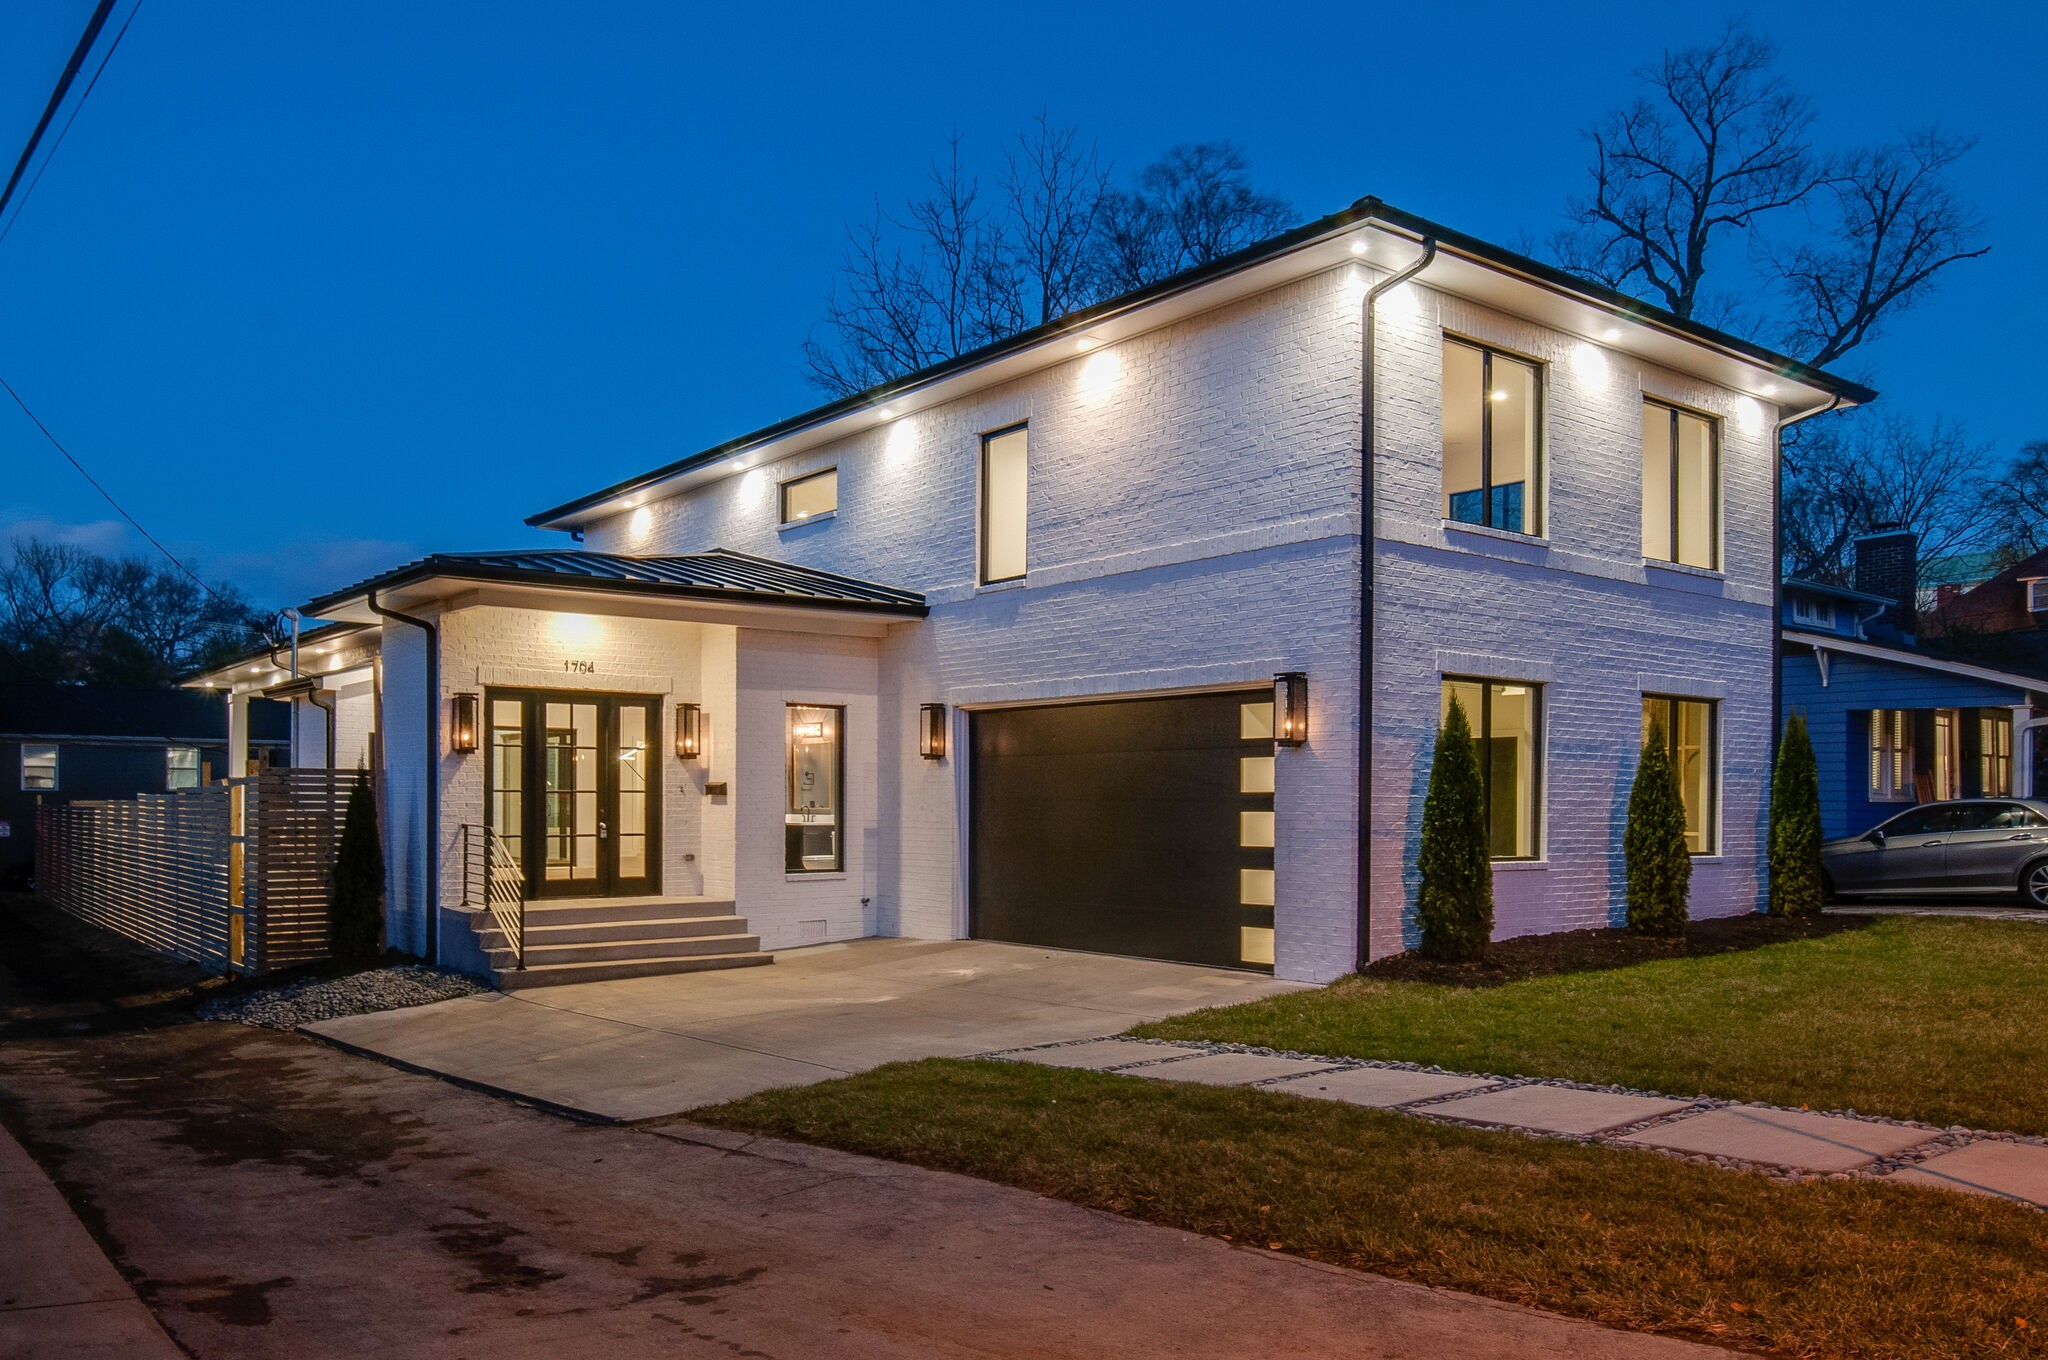 The search is over for your exquisitely executed urban abode in the Vandy-Hillsboro-Belmont district! Chic modern finishes & masterfully appointed designs adorn every square inch of this rare opportunity. Check off your entire wish list including a main floor spa-inspired master suite, IG envy dream kitchen and YES that glorious, sexy pool you have been craving! Private entry suite over the garage for AirBnB or office, etc. If you wait until completion in late 2020 it will be too late! Call NOW!